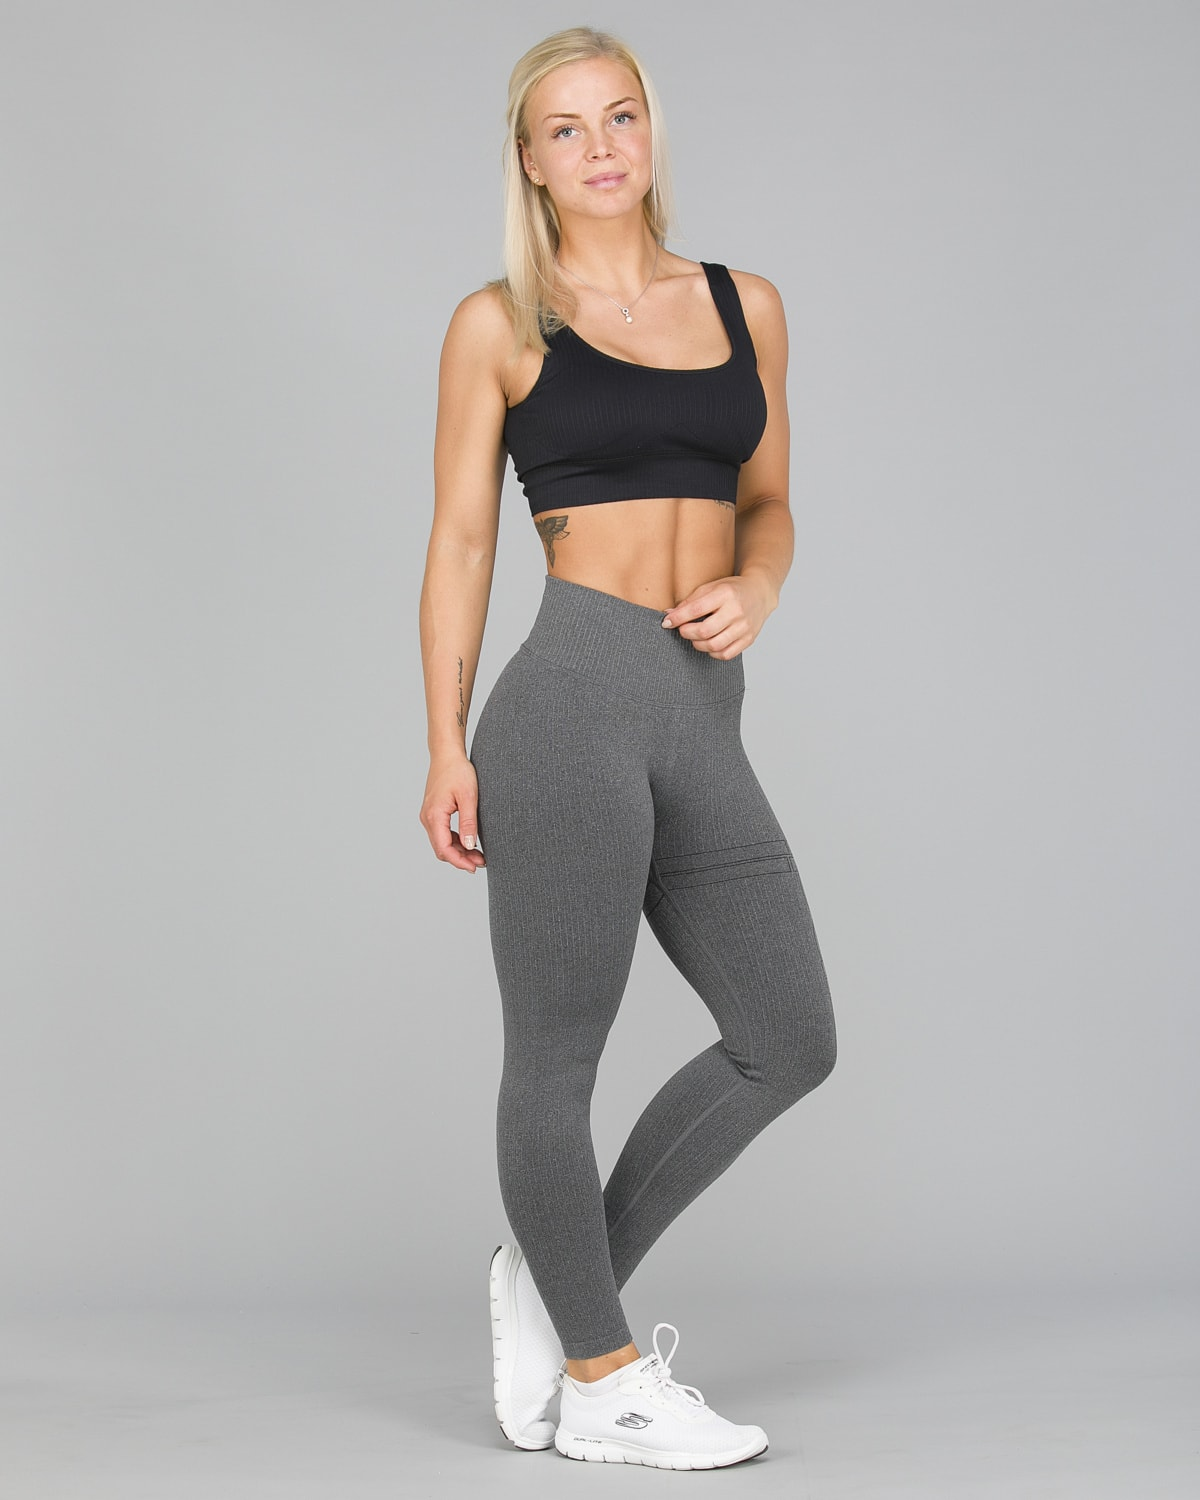 Aim'n Grey Ribbed Seamless Tights6